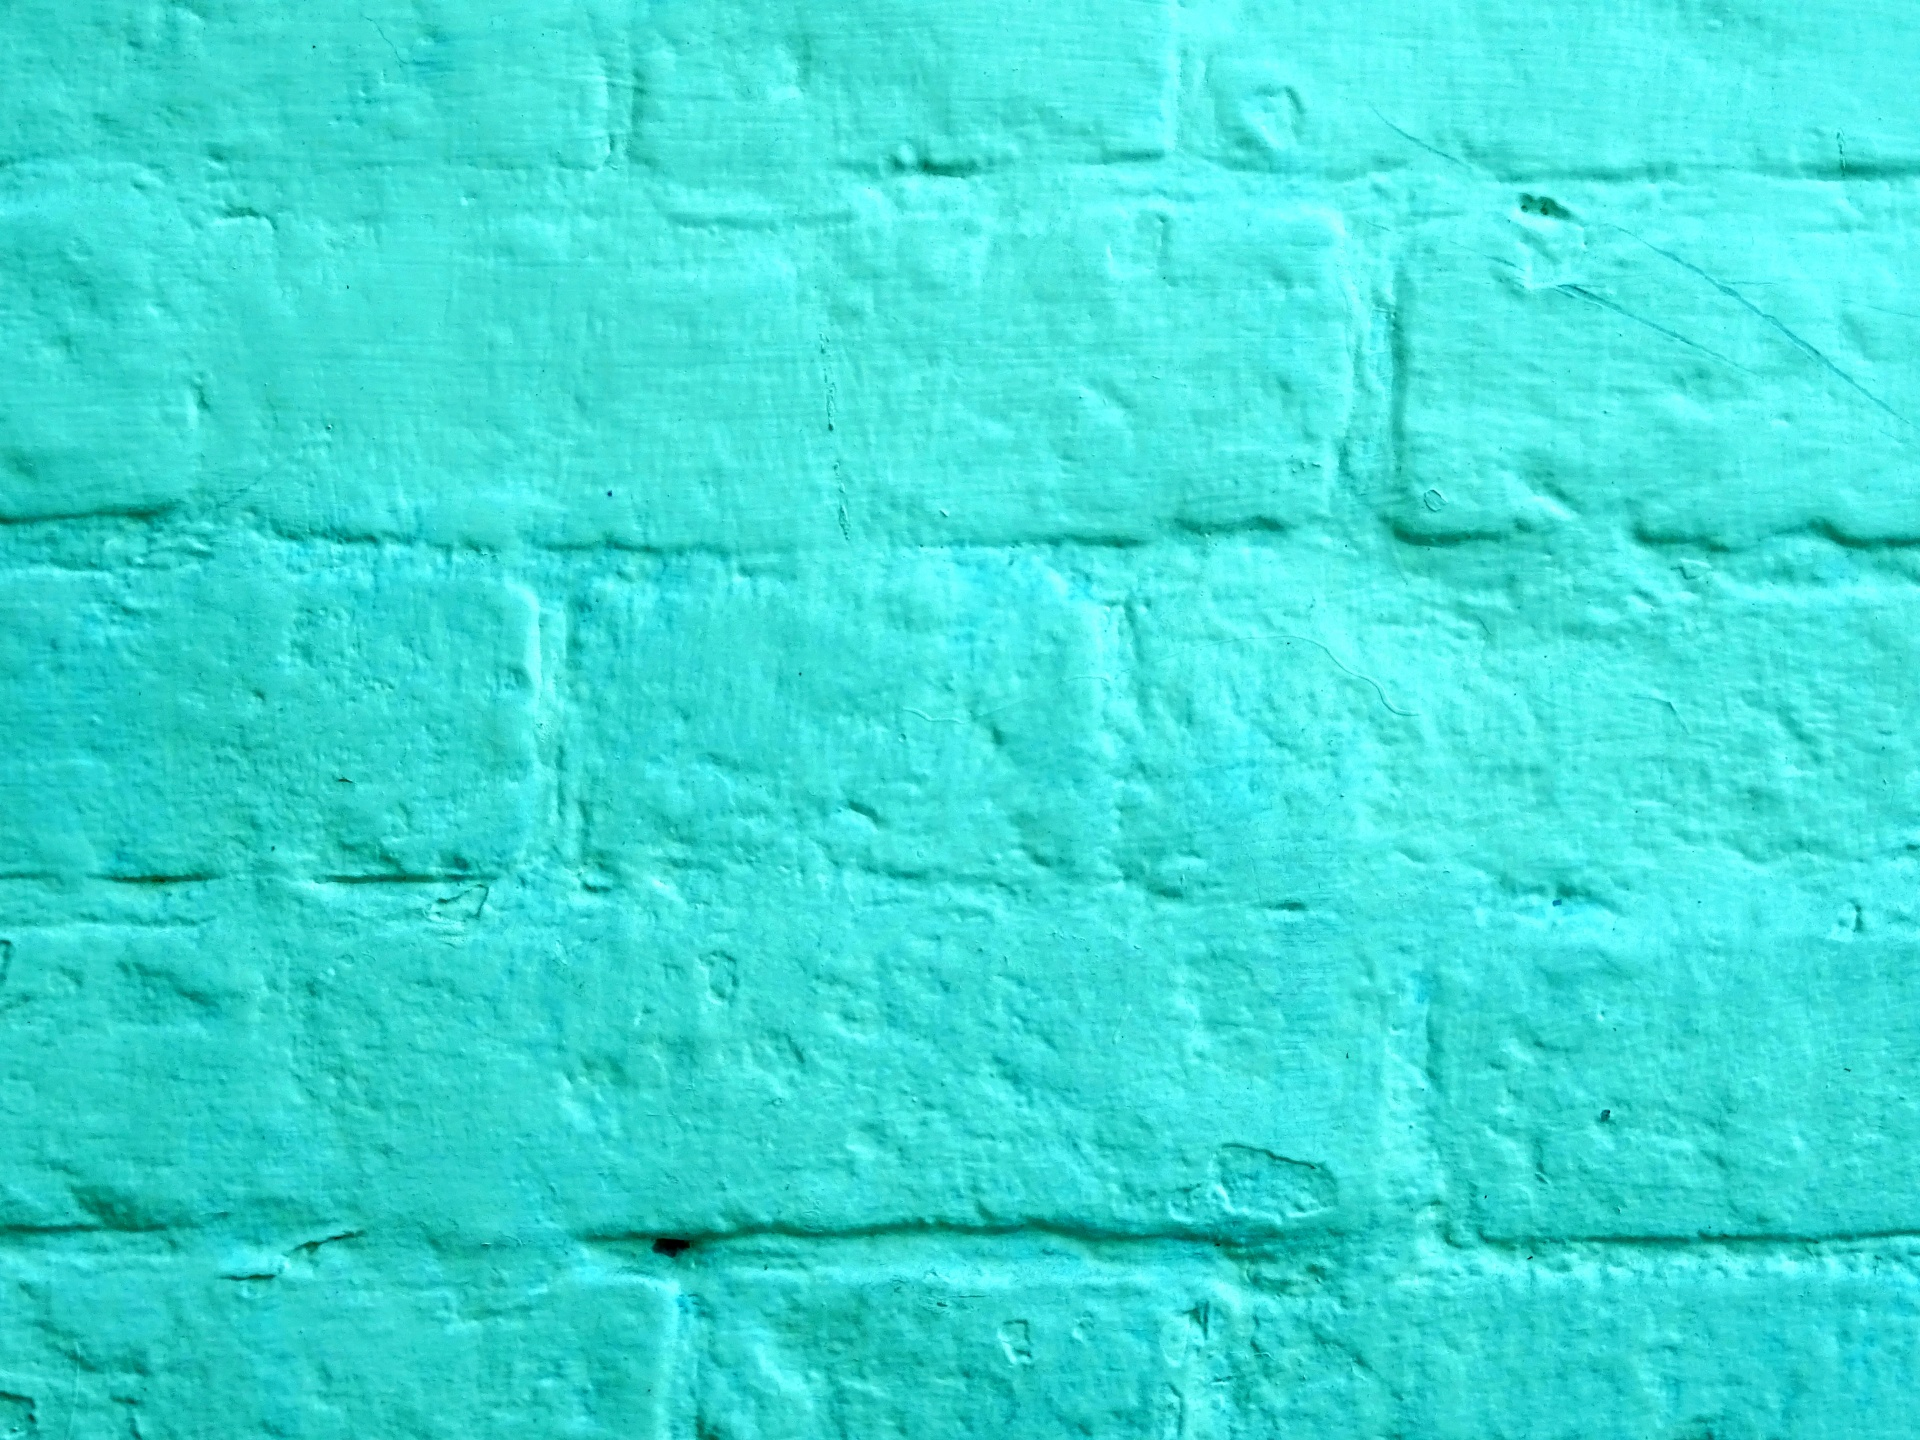 Turquoise Brick Wallpaper Turquoise Painted Brick Wall Free Stock Photo Public